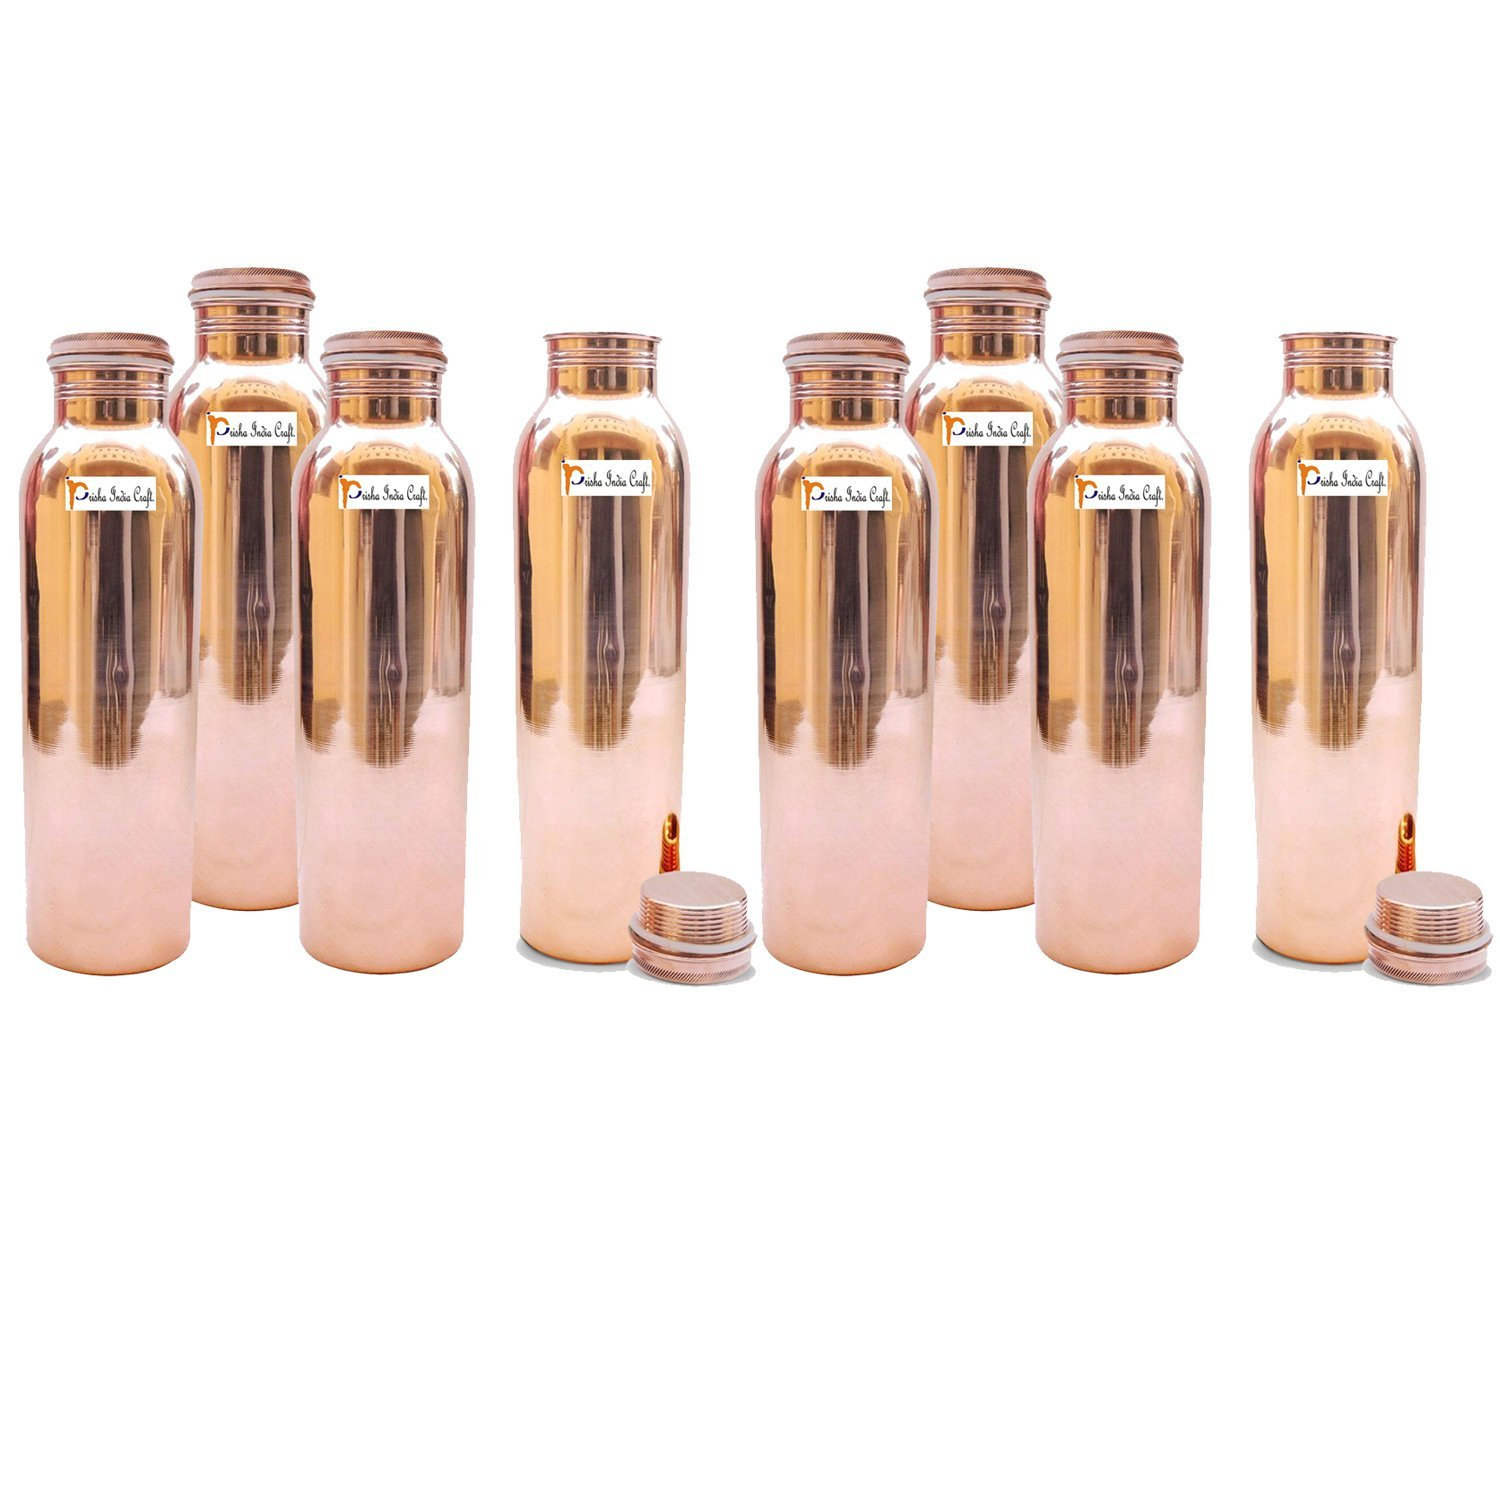 1000ml / 33oz - Set of 8 - Prisha India Craft Pure Copper Water Bottle for Health Benefits - | Joint Free, Handmade - Water Bottles - Handmade Christmas Gift